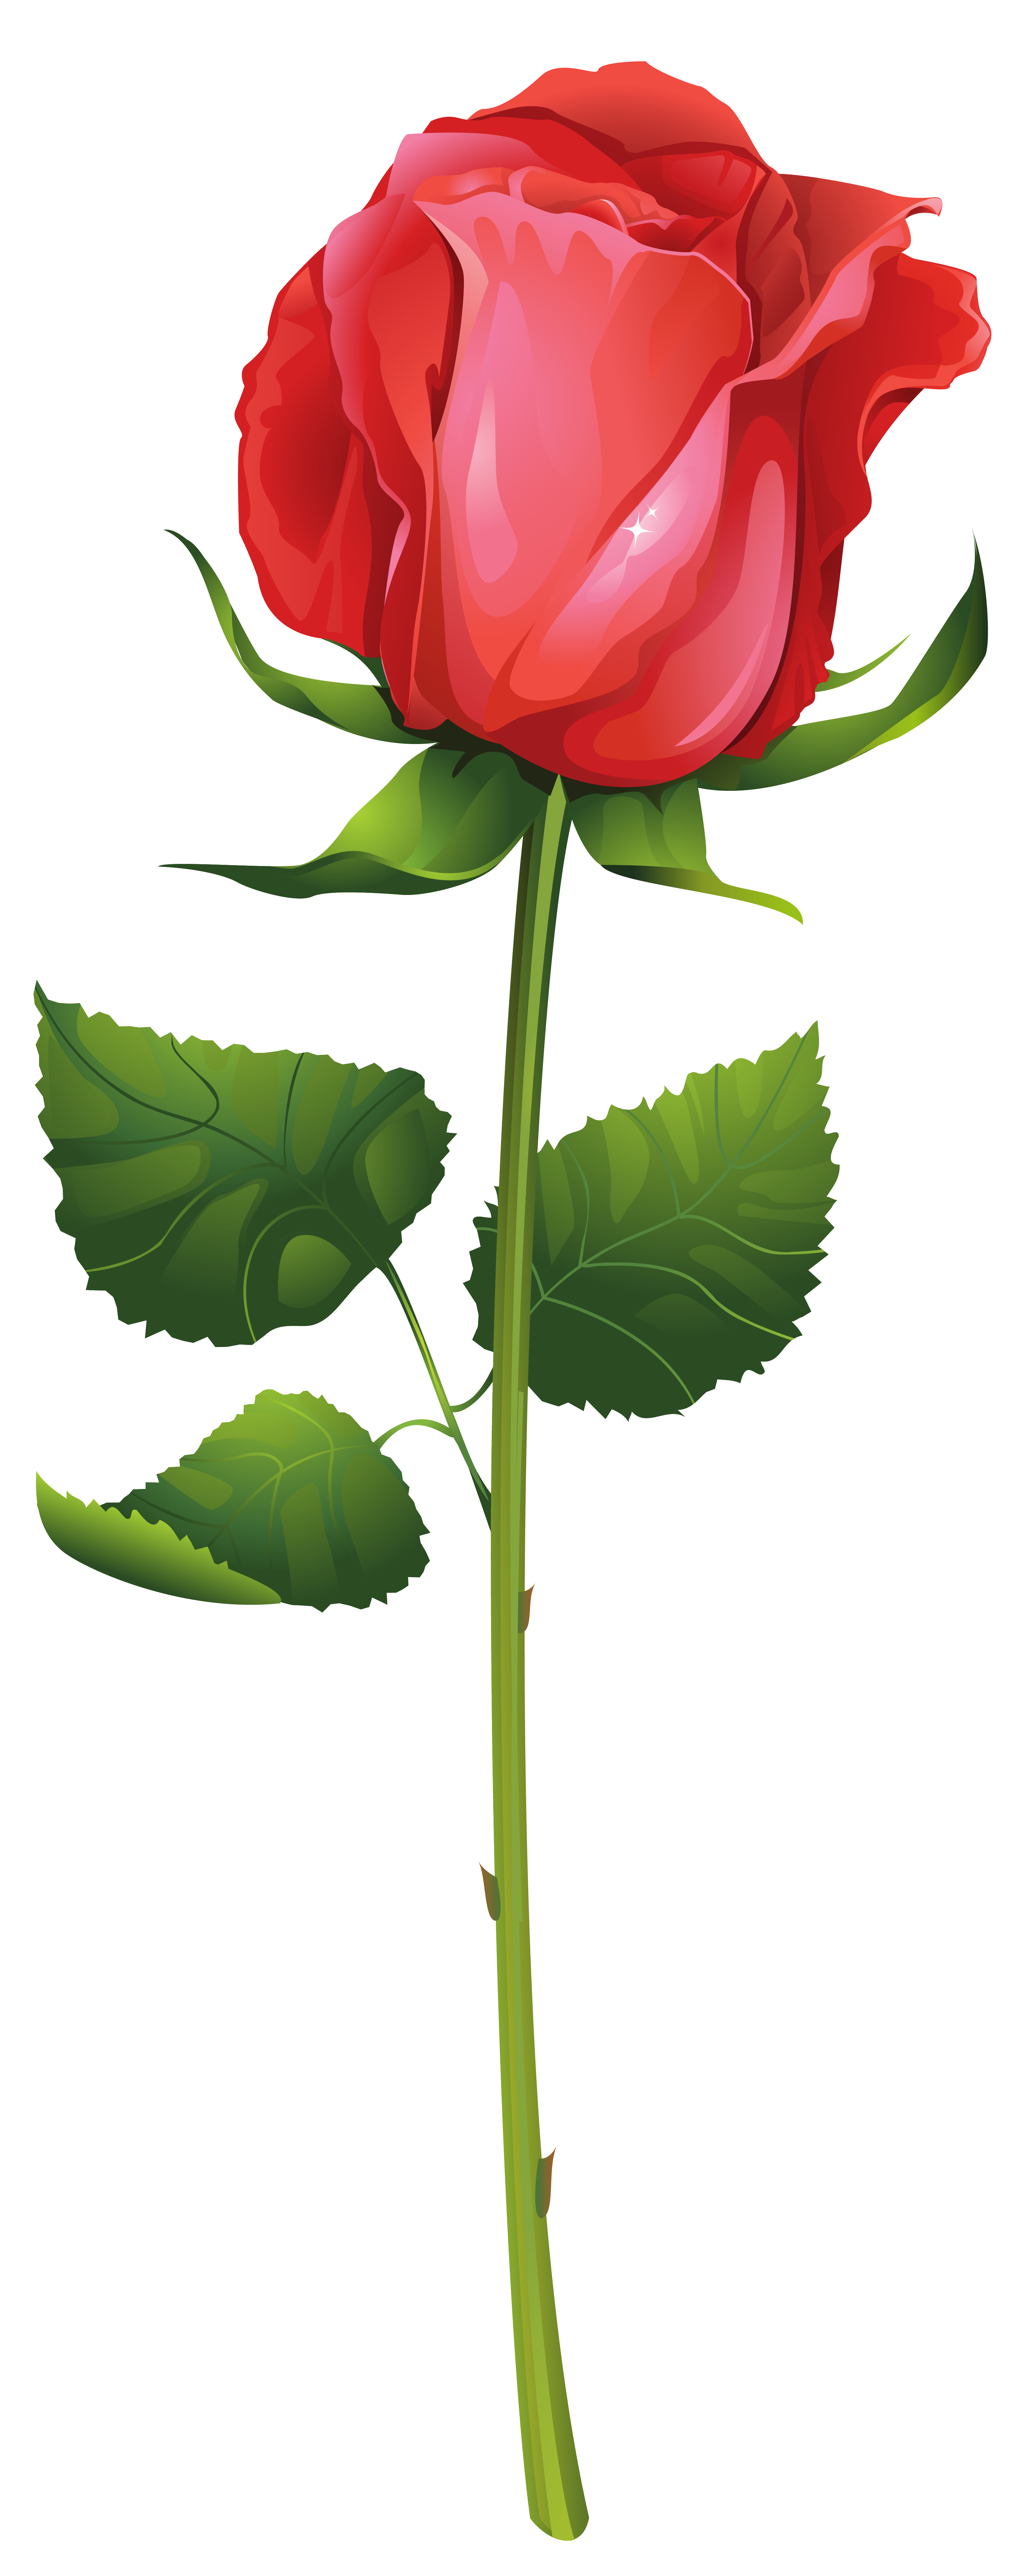 Rose with clip art. Flower stem png